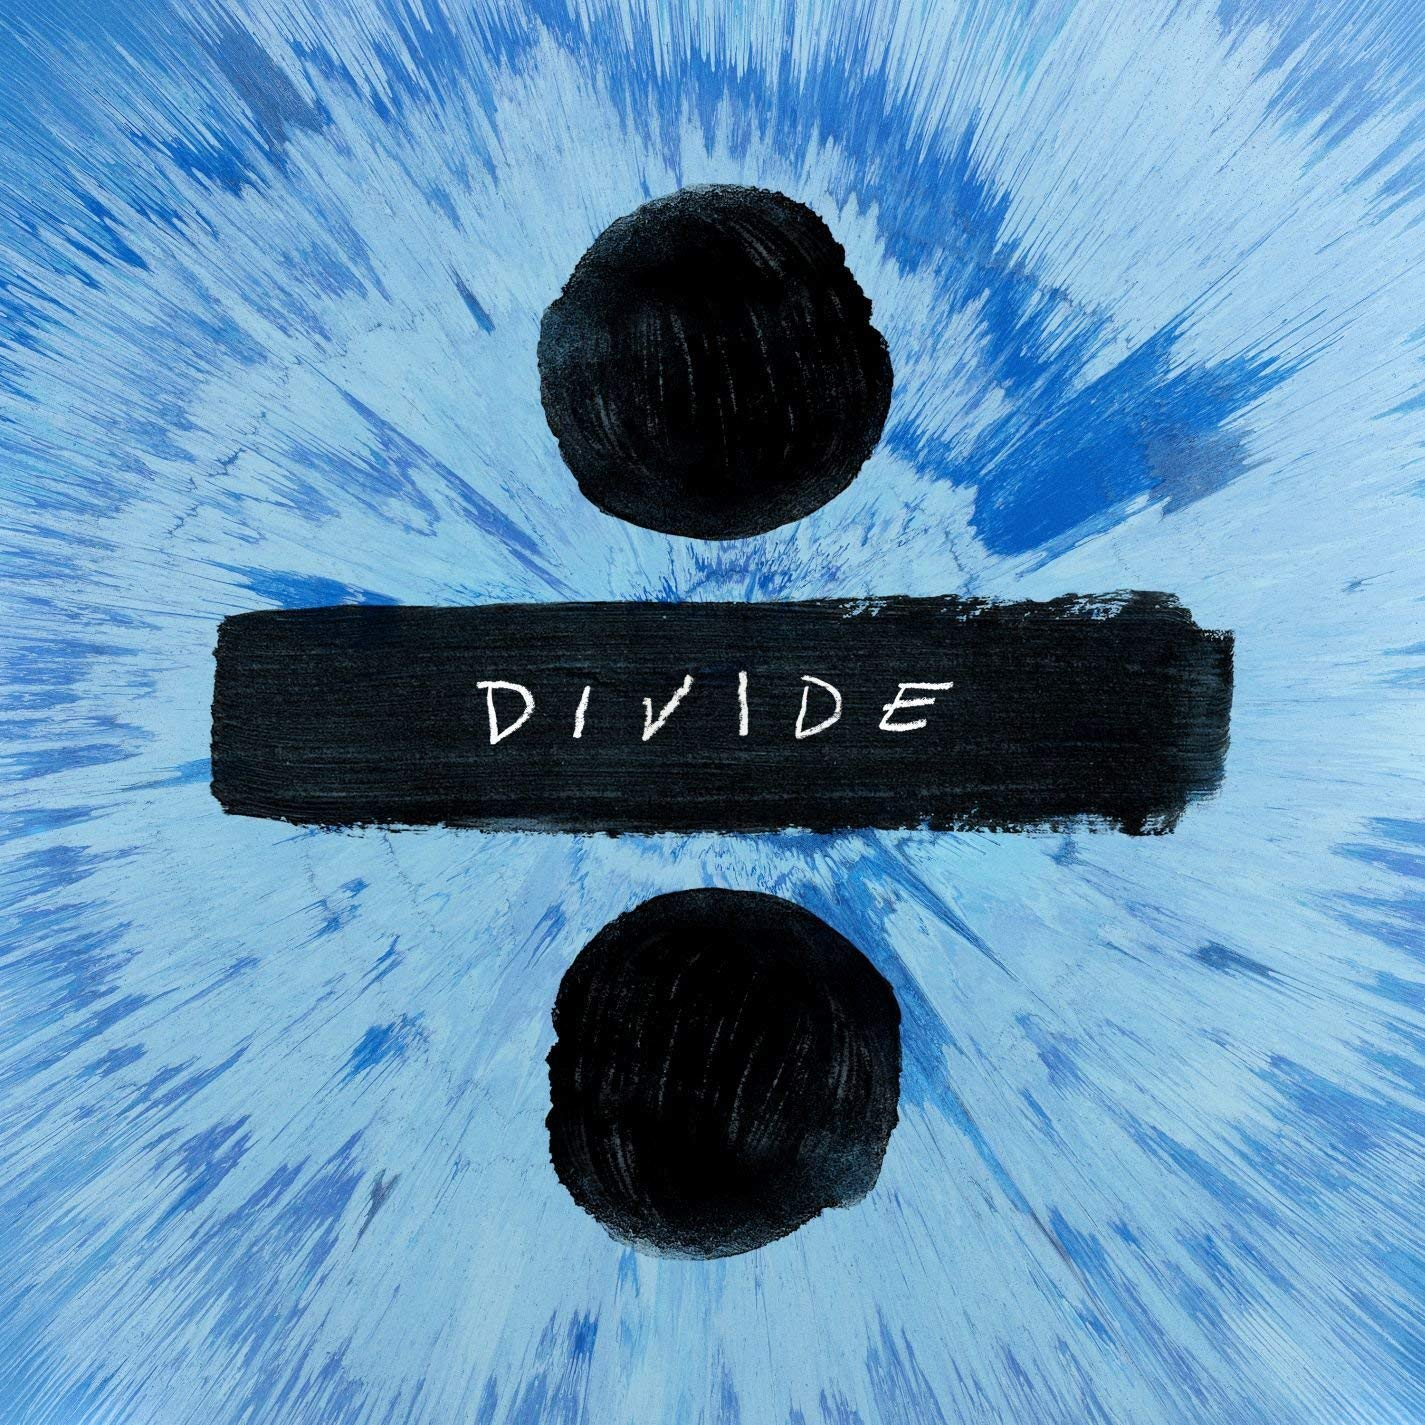 VINYL ED SHEERAN - Vinyl Sound